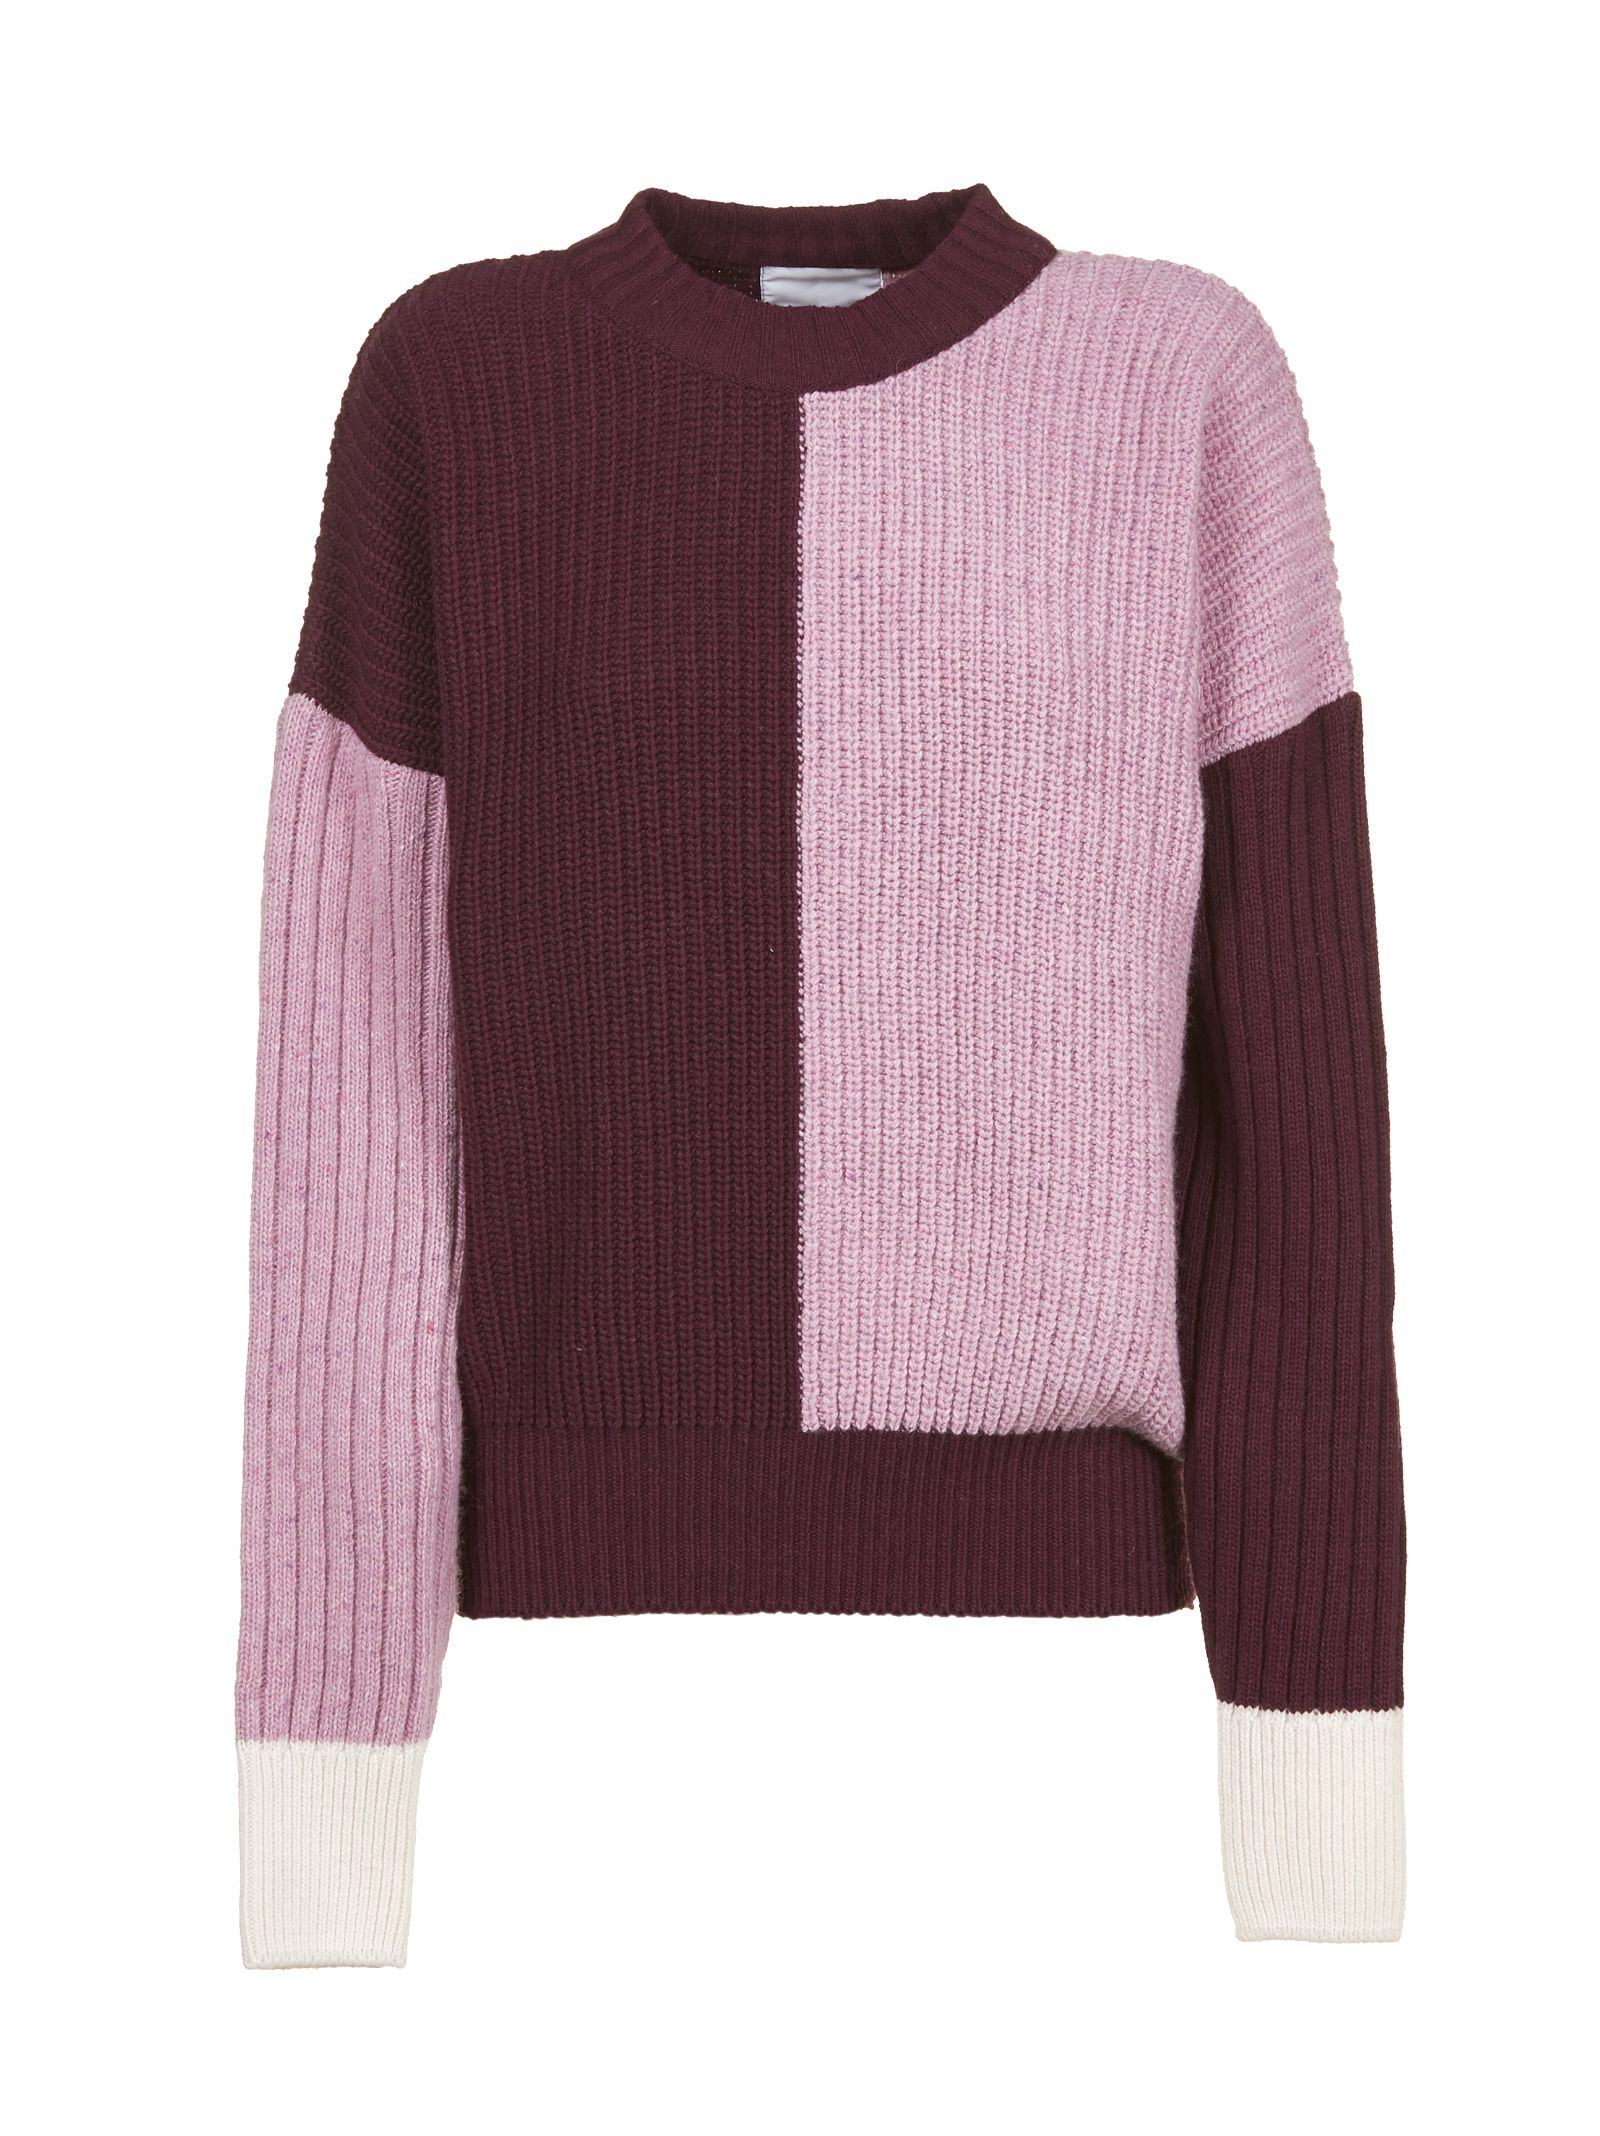 VALENTINE WITMEUR LAB Valentine Witmeur Classic Sweater in Prugna Rosa